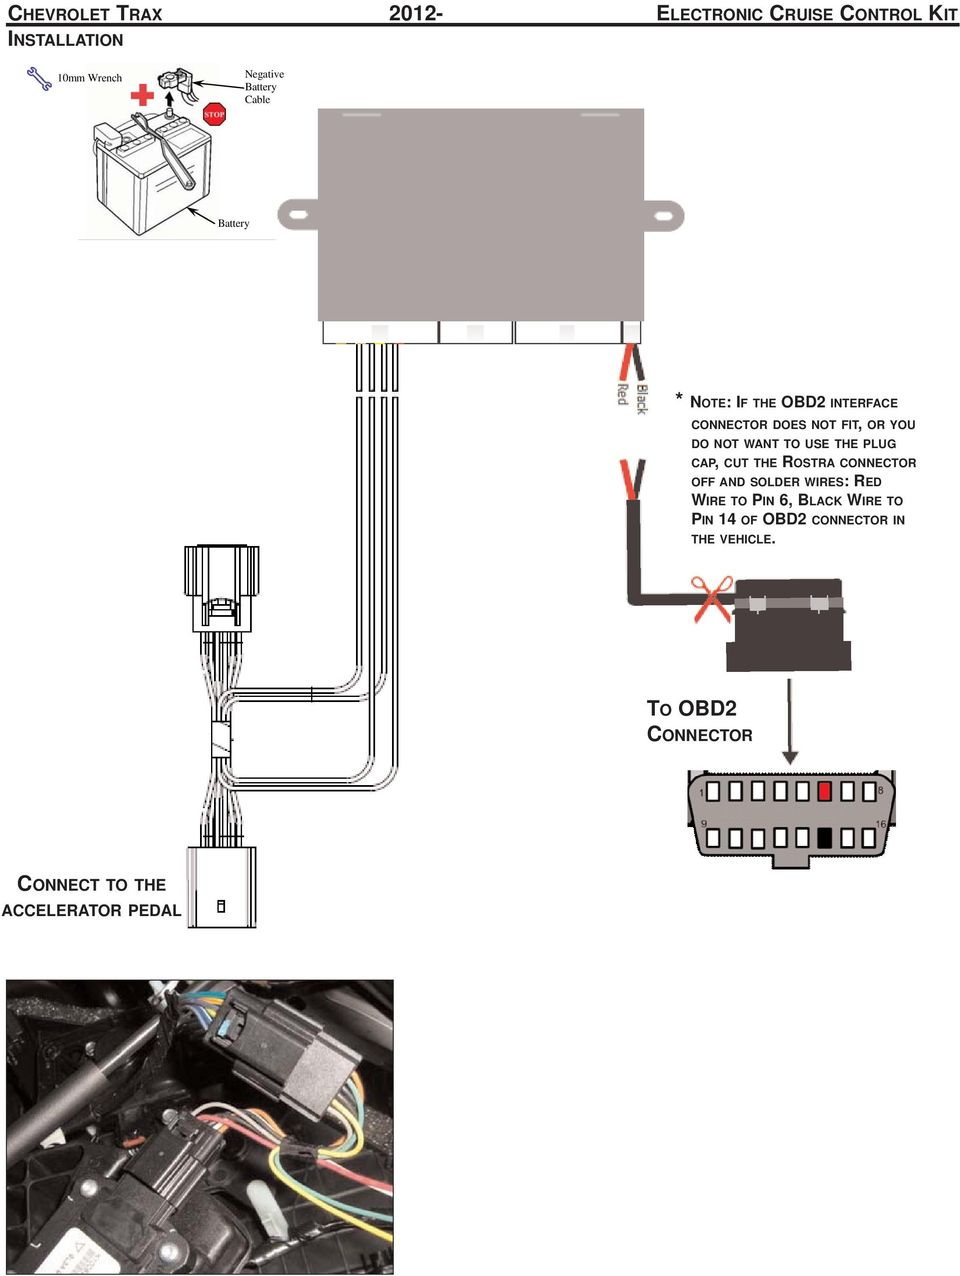 Recommended Tools Personal Vehicle Protection Safety Glasses Pdf Rostra Wiring Diagram Want To Use The Plug Cap Cut Connector Off And Solder Wires